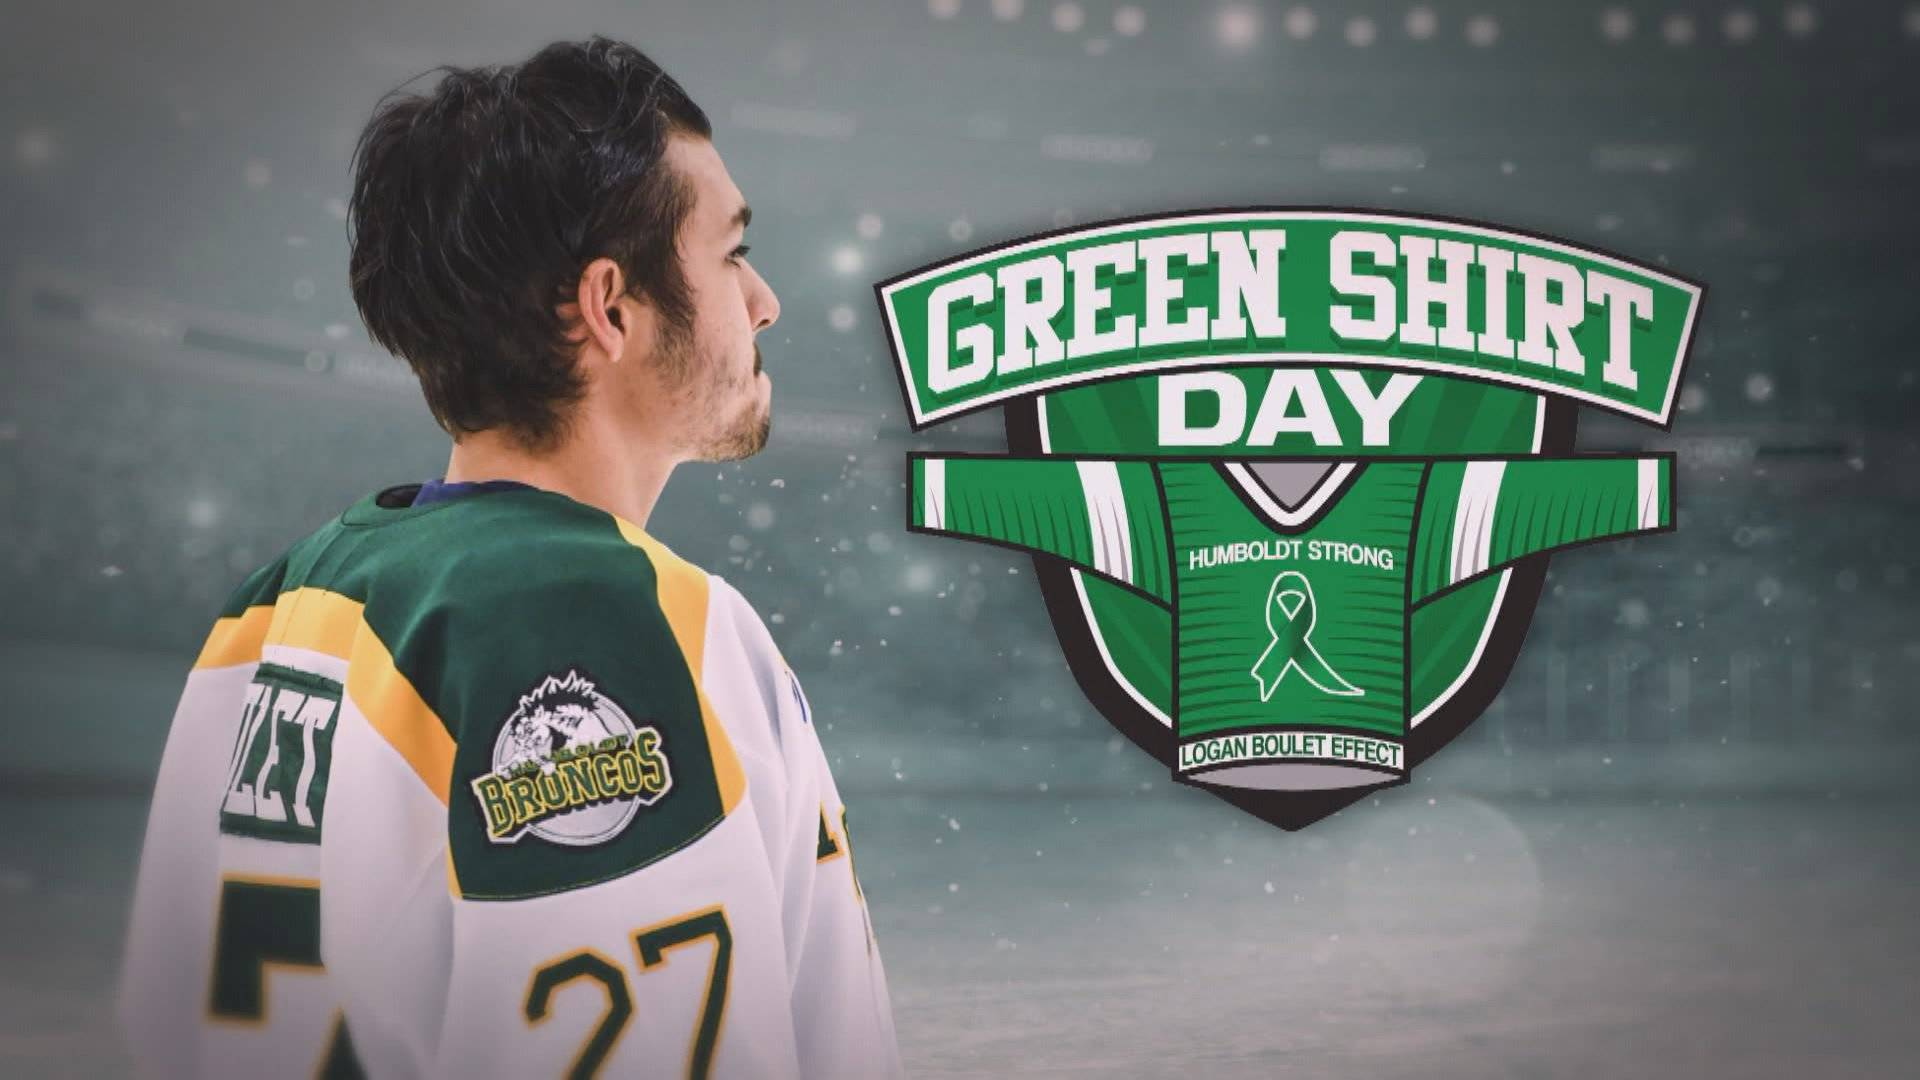 SUPPORT GREEN SHIRT DAY ON APRIL 7!